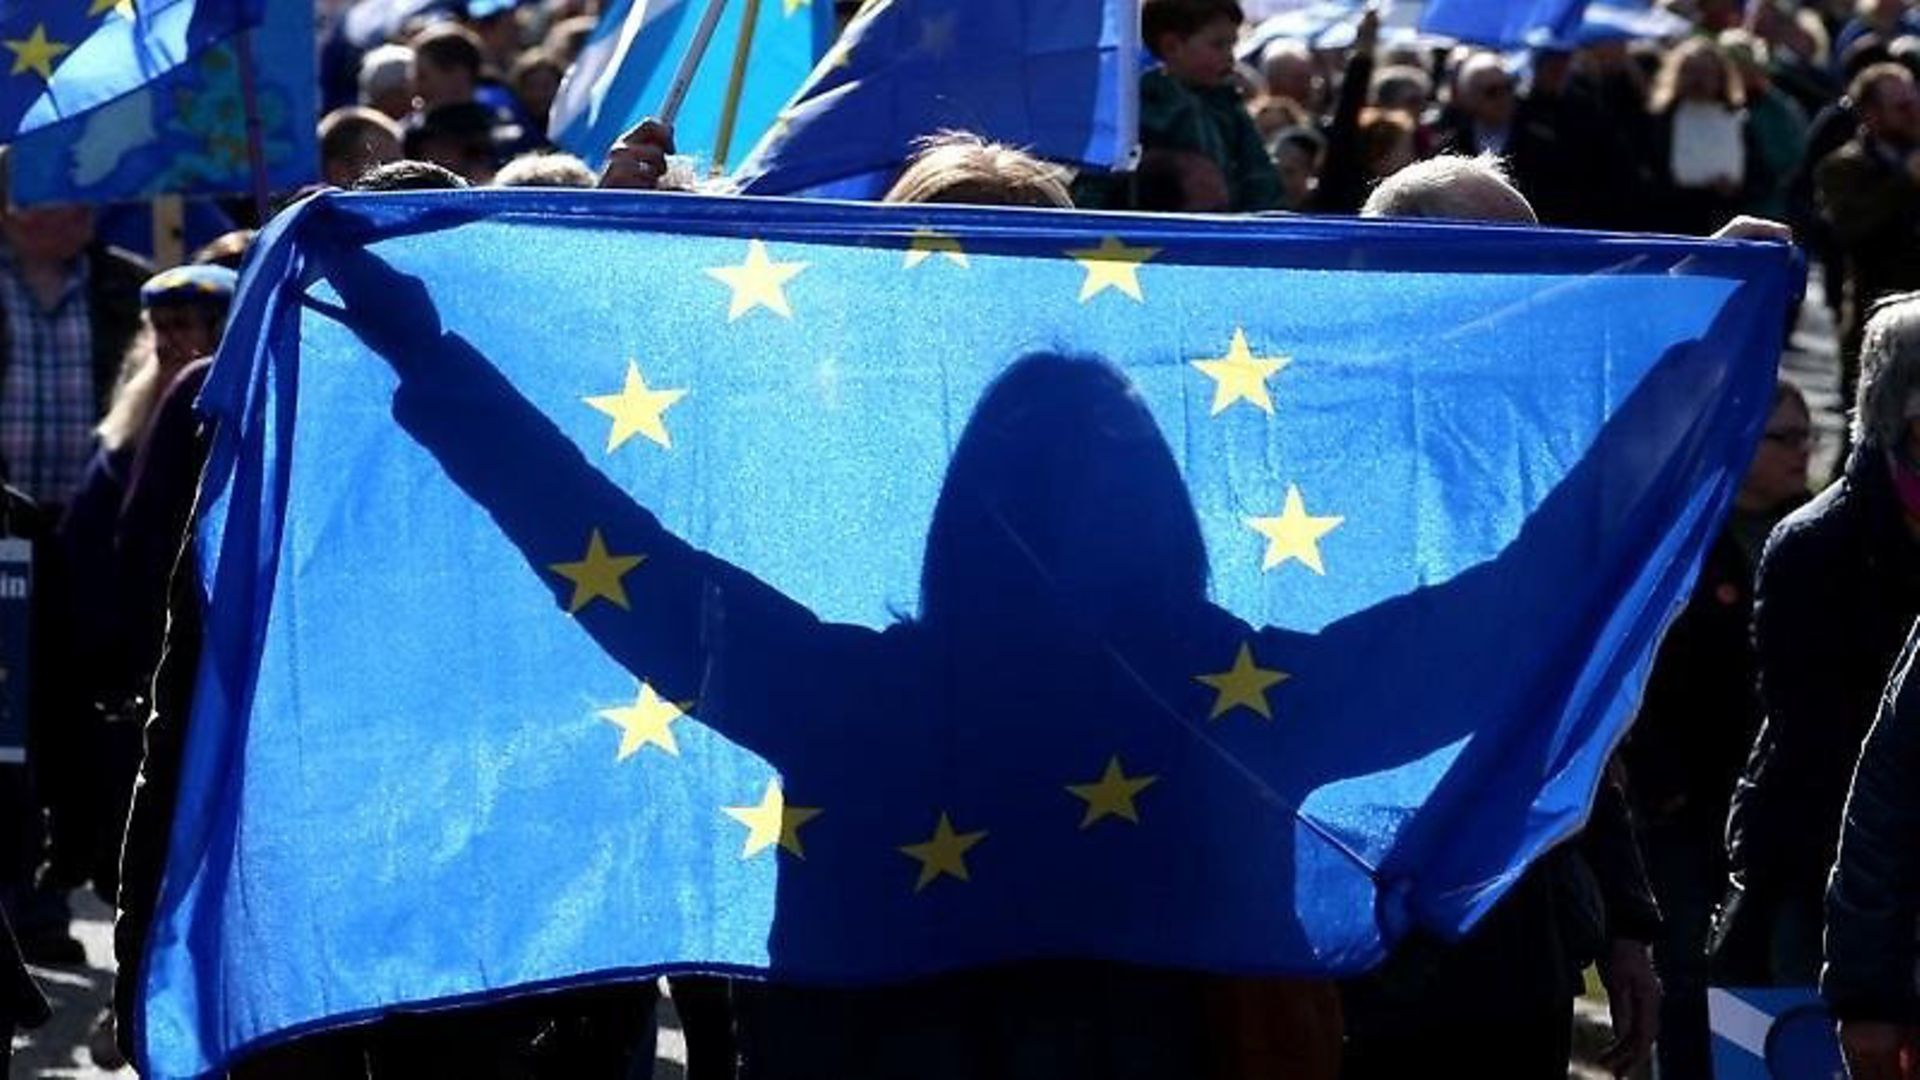 A poll has revealed that Wales would vote to rejoin the EU. - Credit: PA